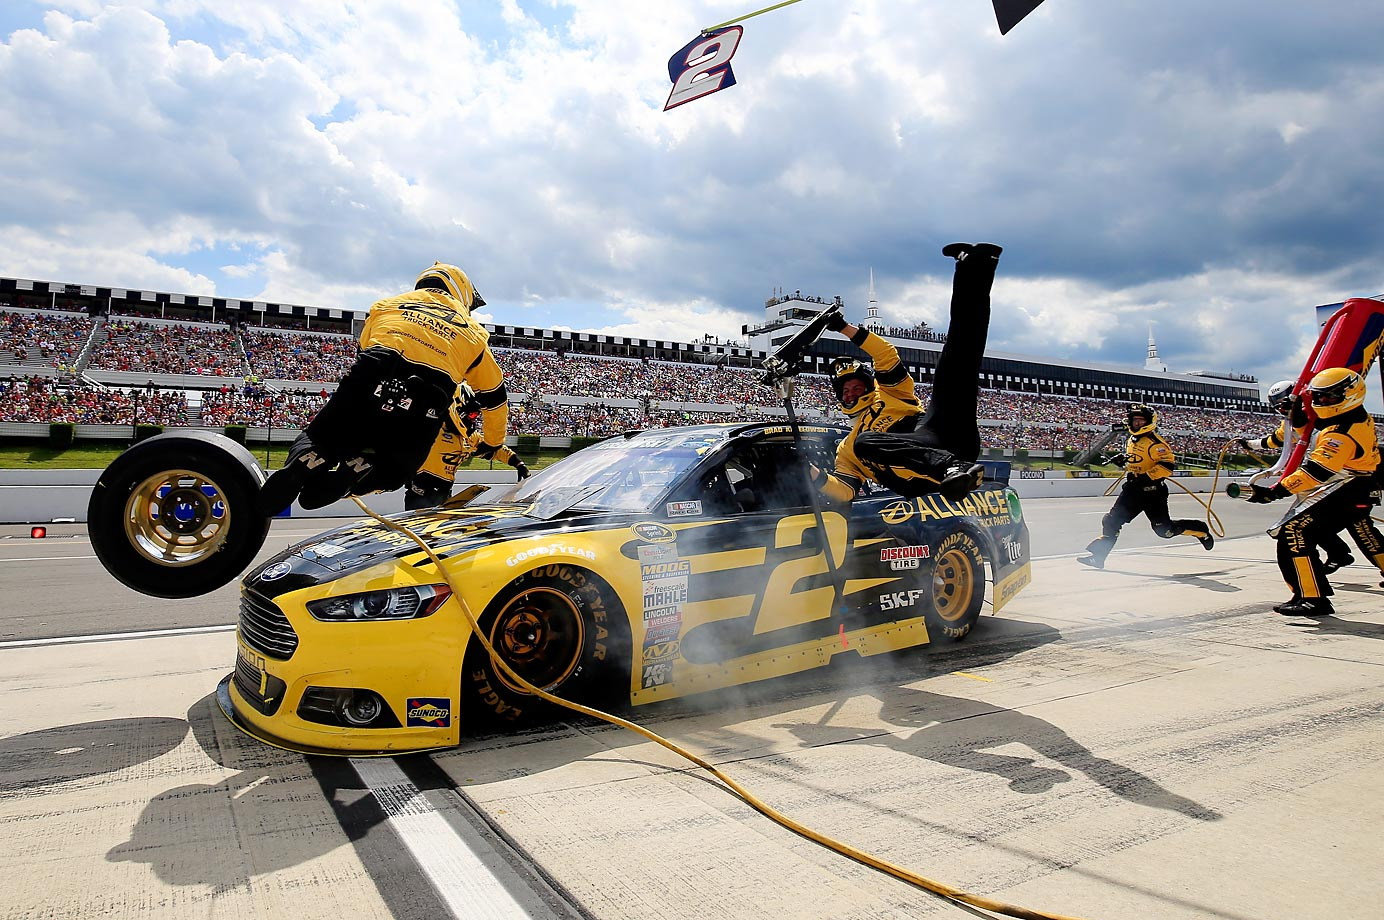 Brad Keselowski crashes into his crew on pit road during the NASCAR Sprint Cup Series Windows 10 400 at Pocono Raceway. No one was injured in the incident.